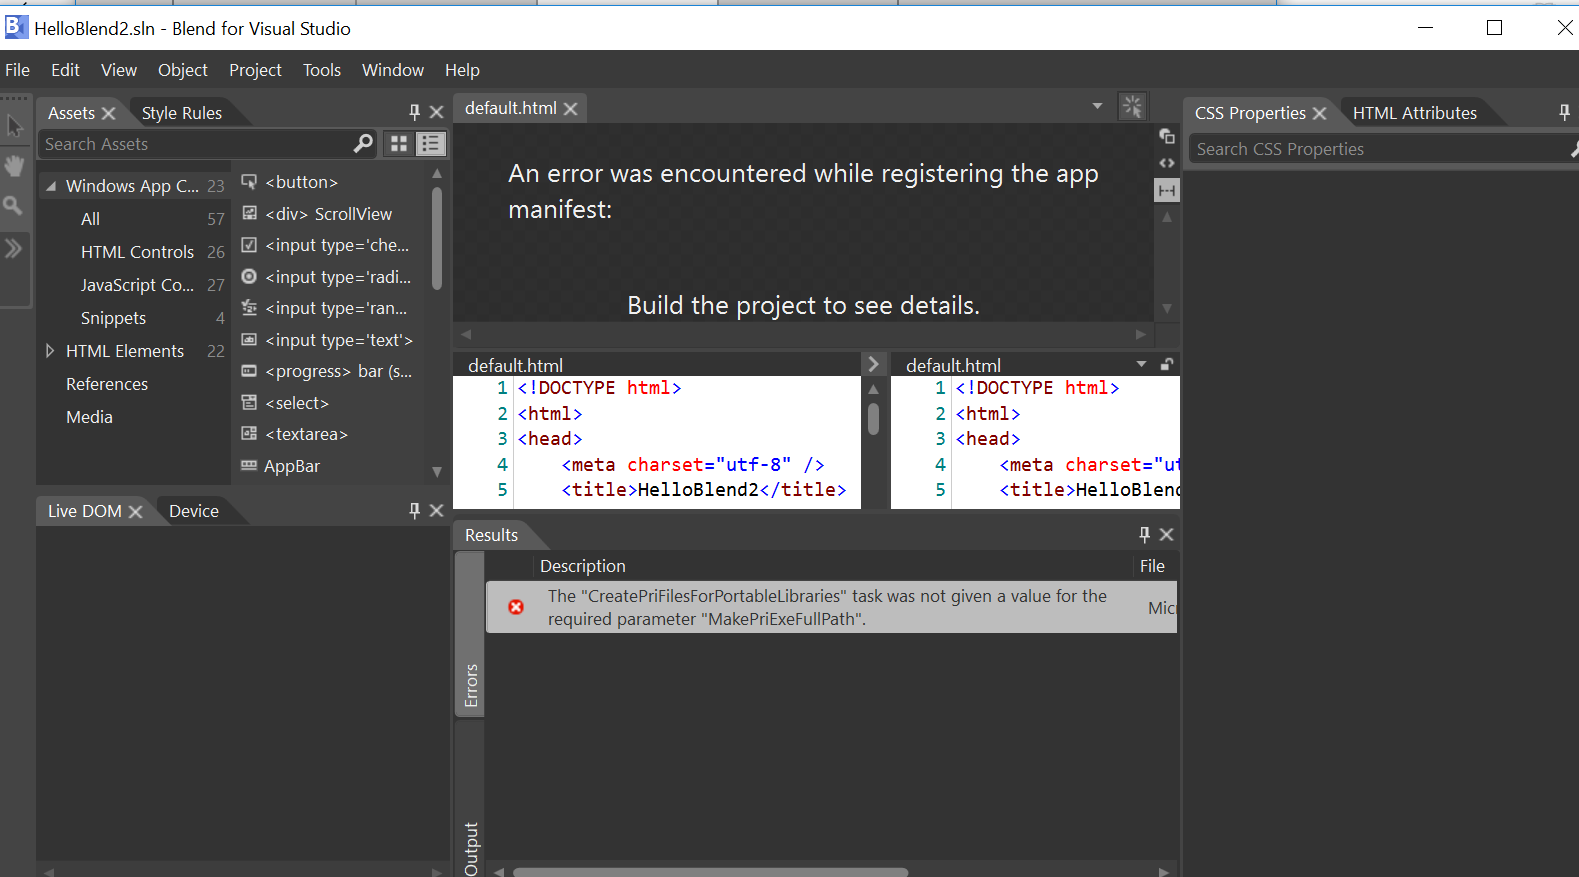 Html project in Blend 2019 1fc7f757-9dce-470f-a691-6660c21789f3?upload=true.png